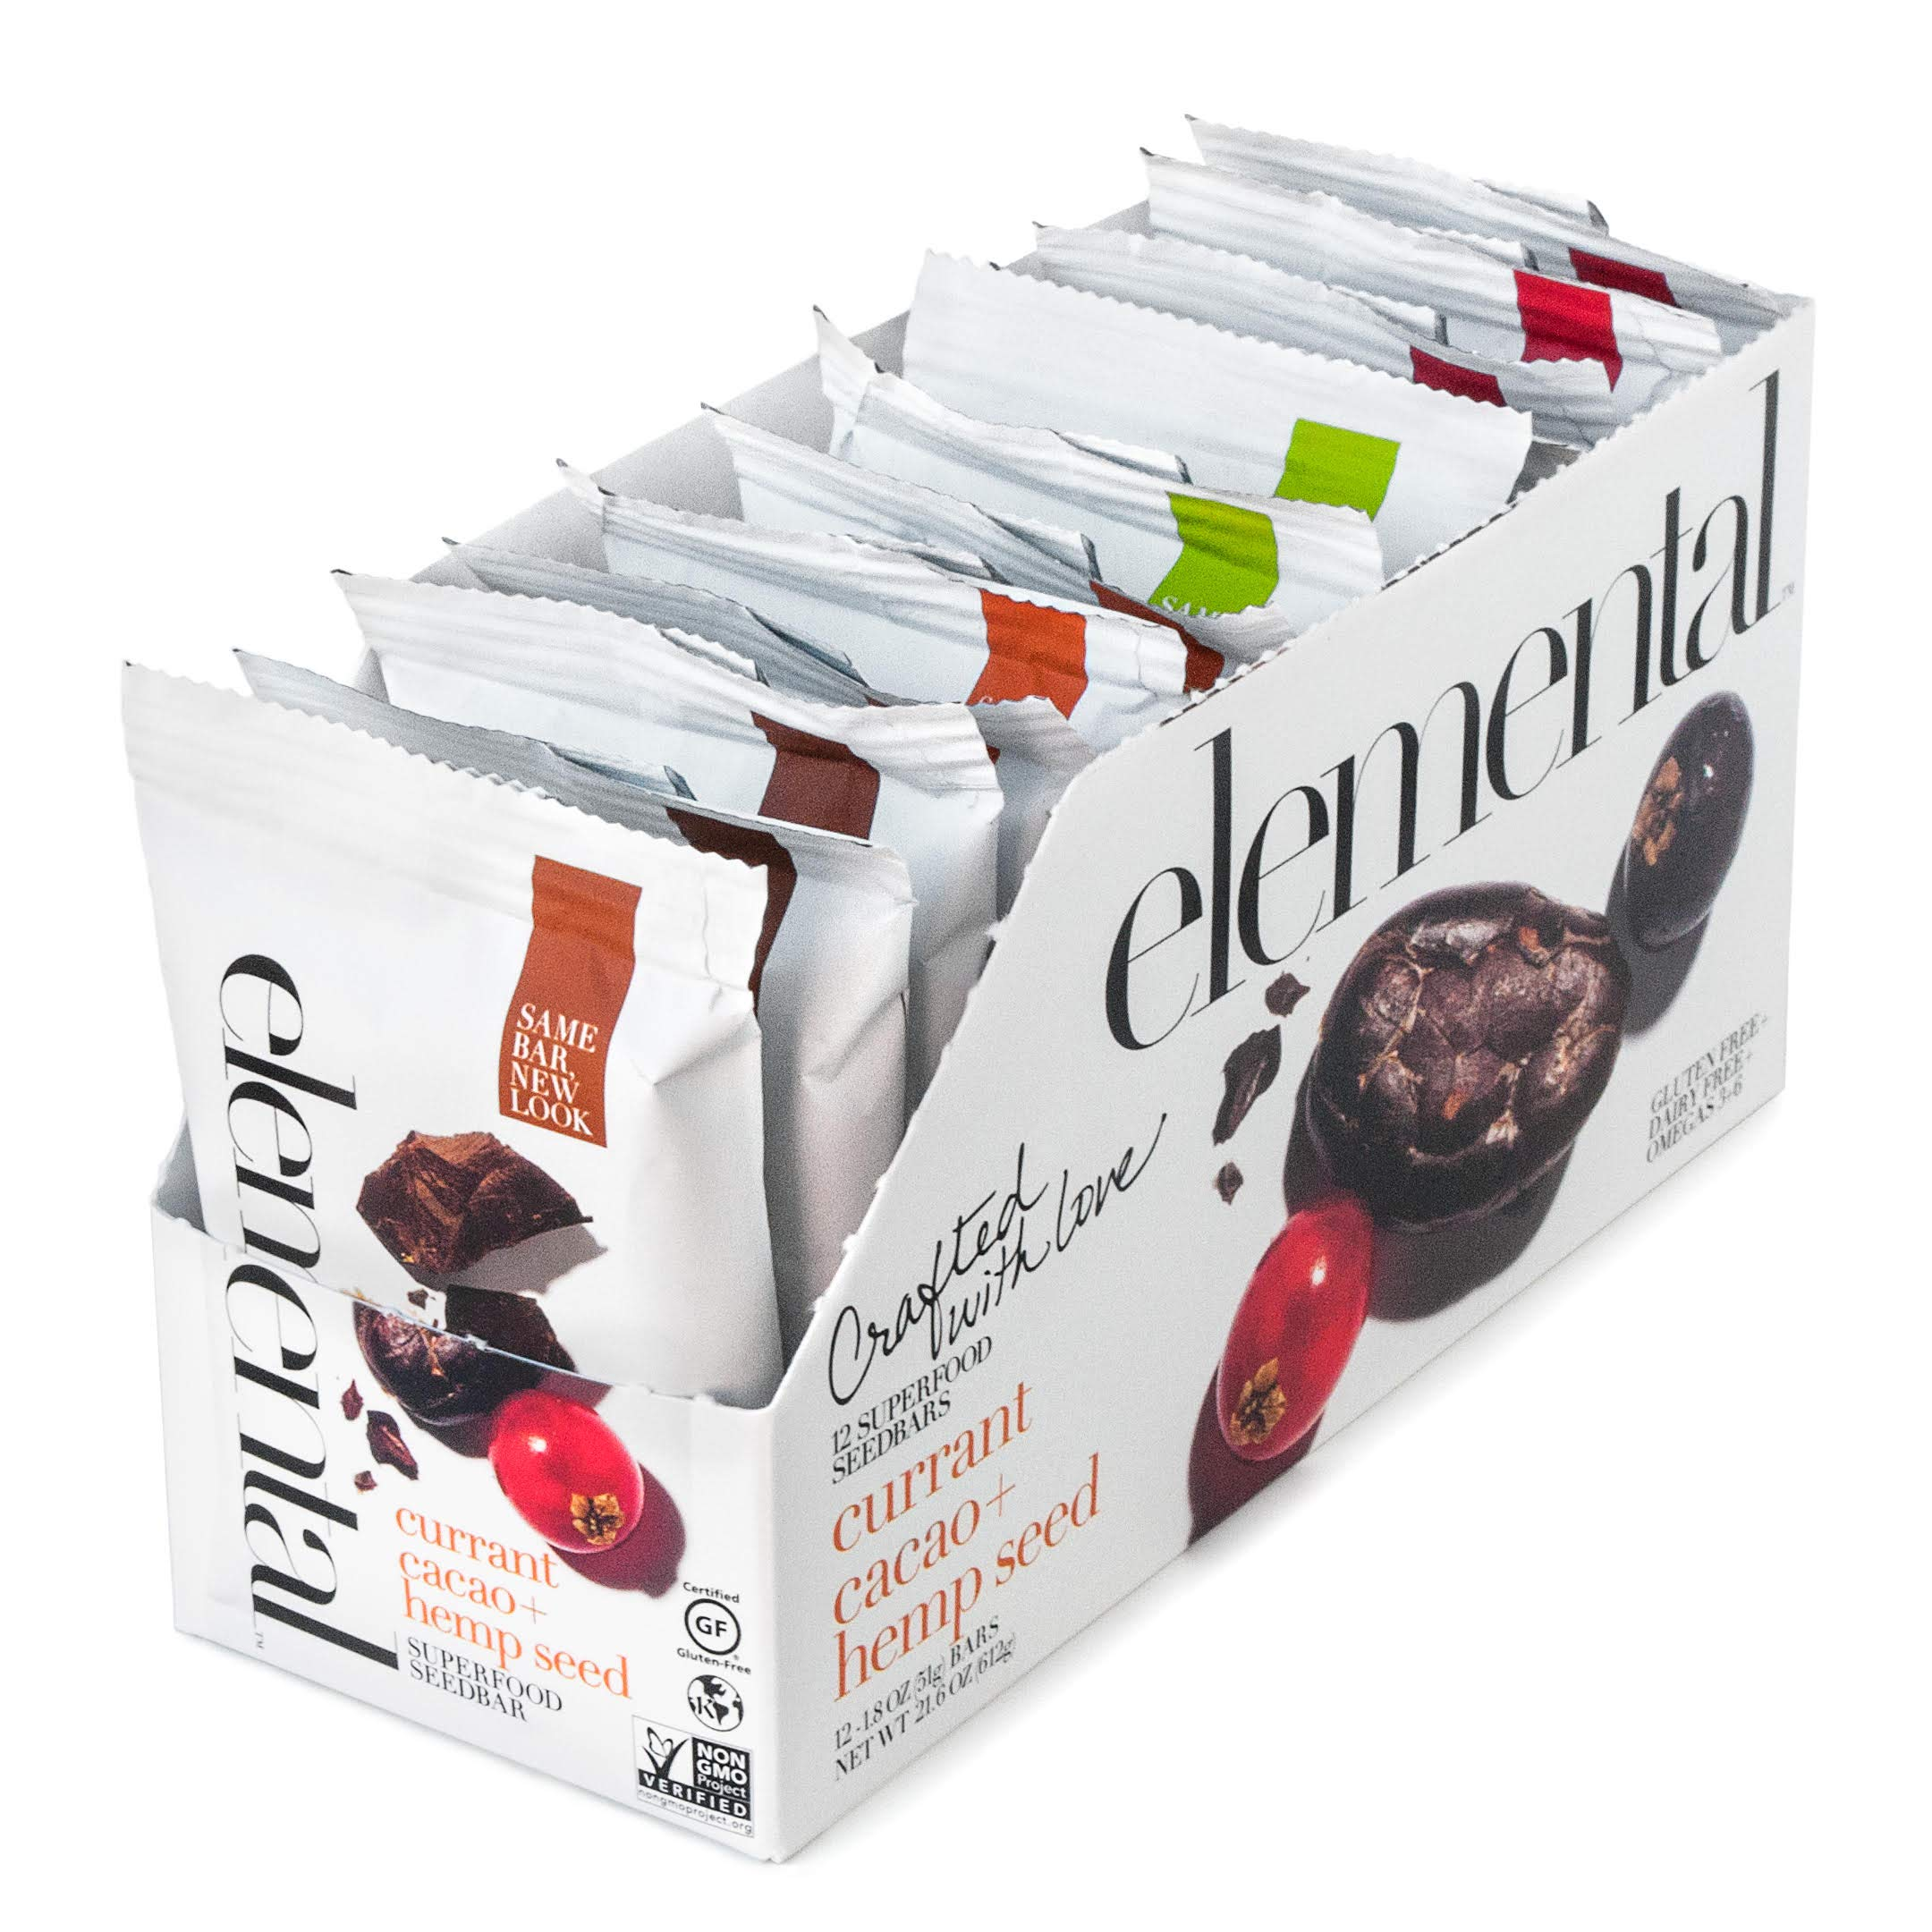 Variety Pack! 12 Seedbars by Elemental Superfood | Refrigerated Bar | Organic Ingredients, Plant Based, Gluten-Free, Non-GMO Verified, Kosher, Dairy-Free